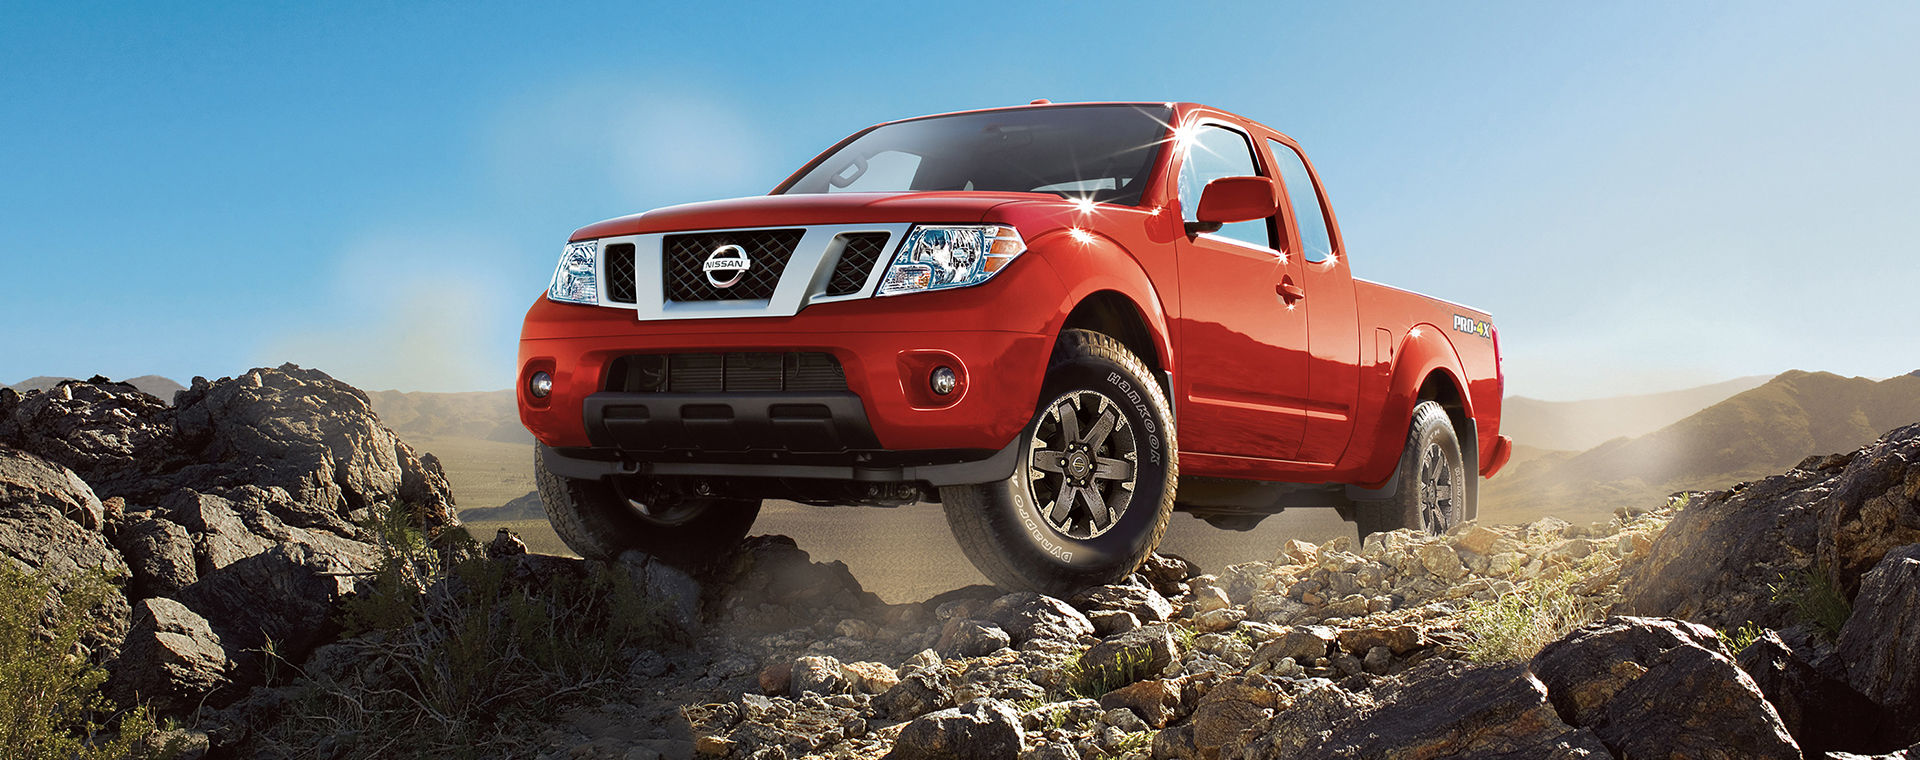 New Frontier inventory at Quirk Nissan